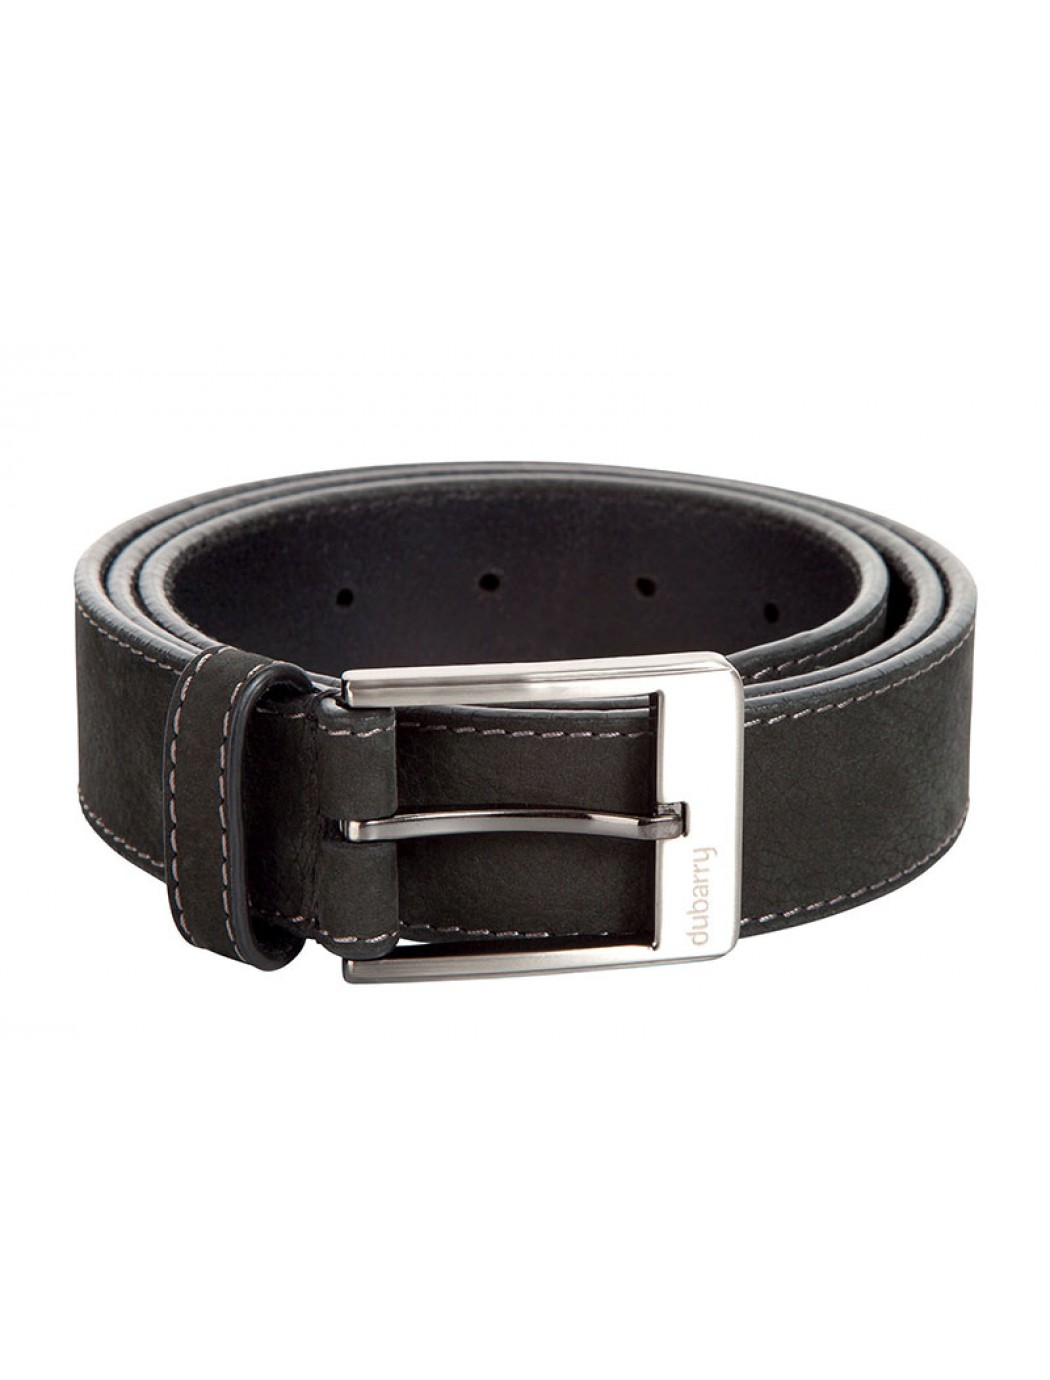 belt-accessories-black